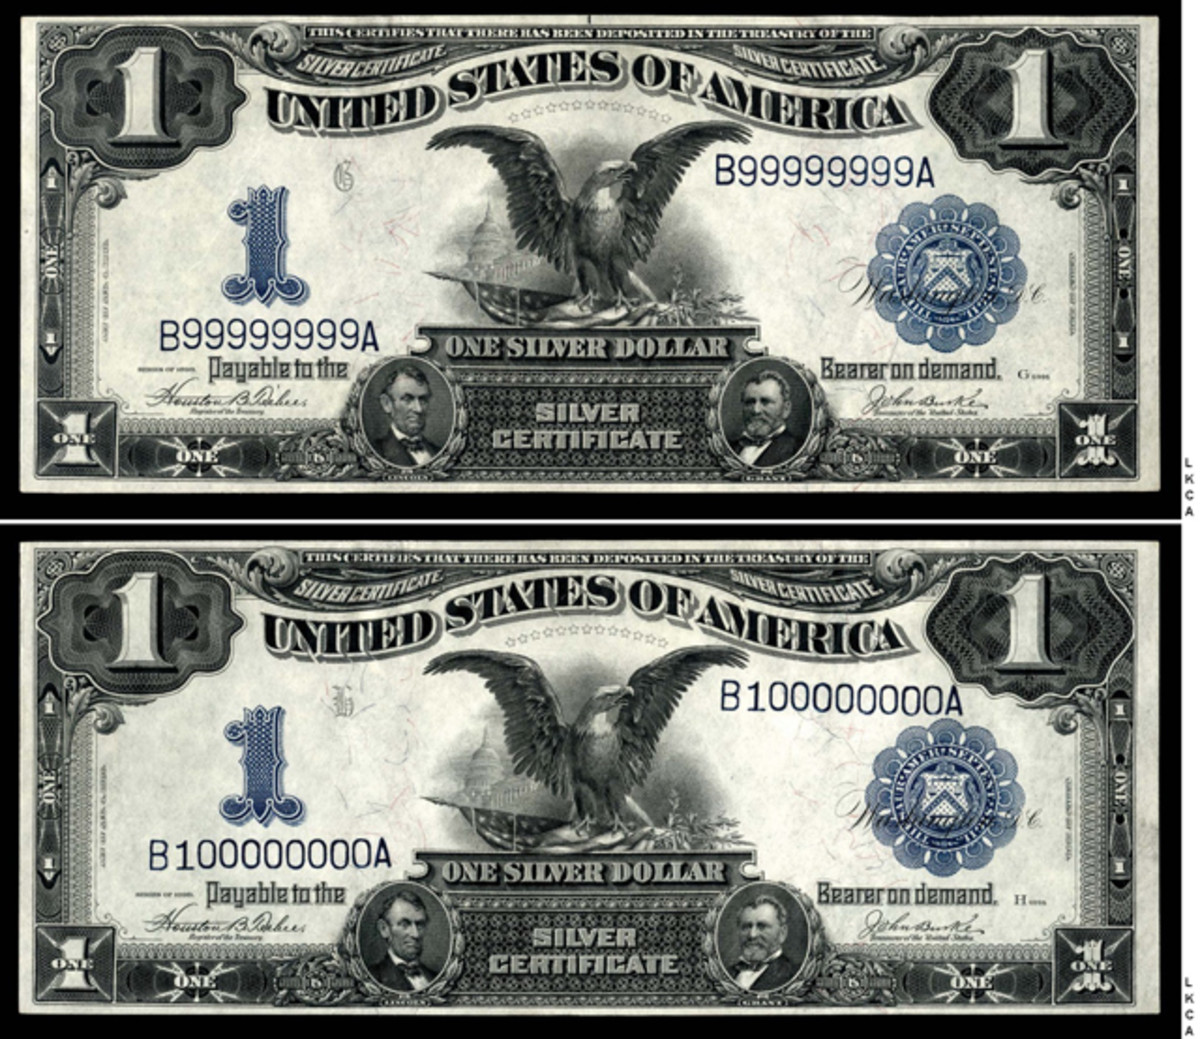 Lot 1083, a pair of $1 1899 large size silver certificates from the same block with serial numbers #99999999 and #10000000, Fr. 233